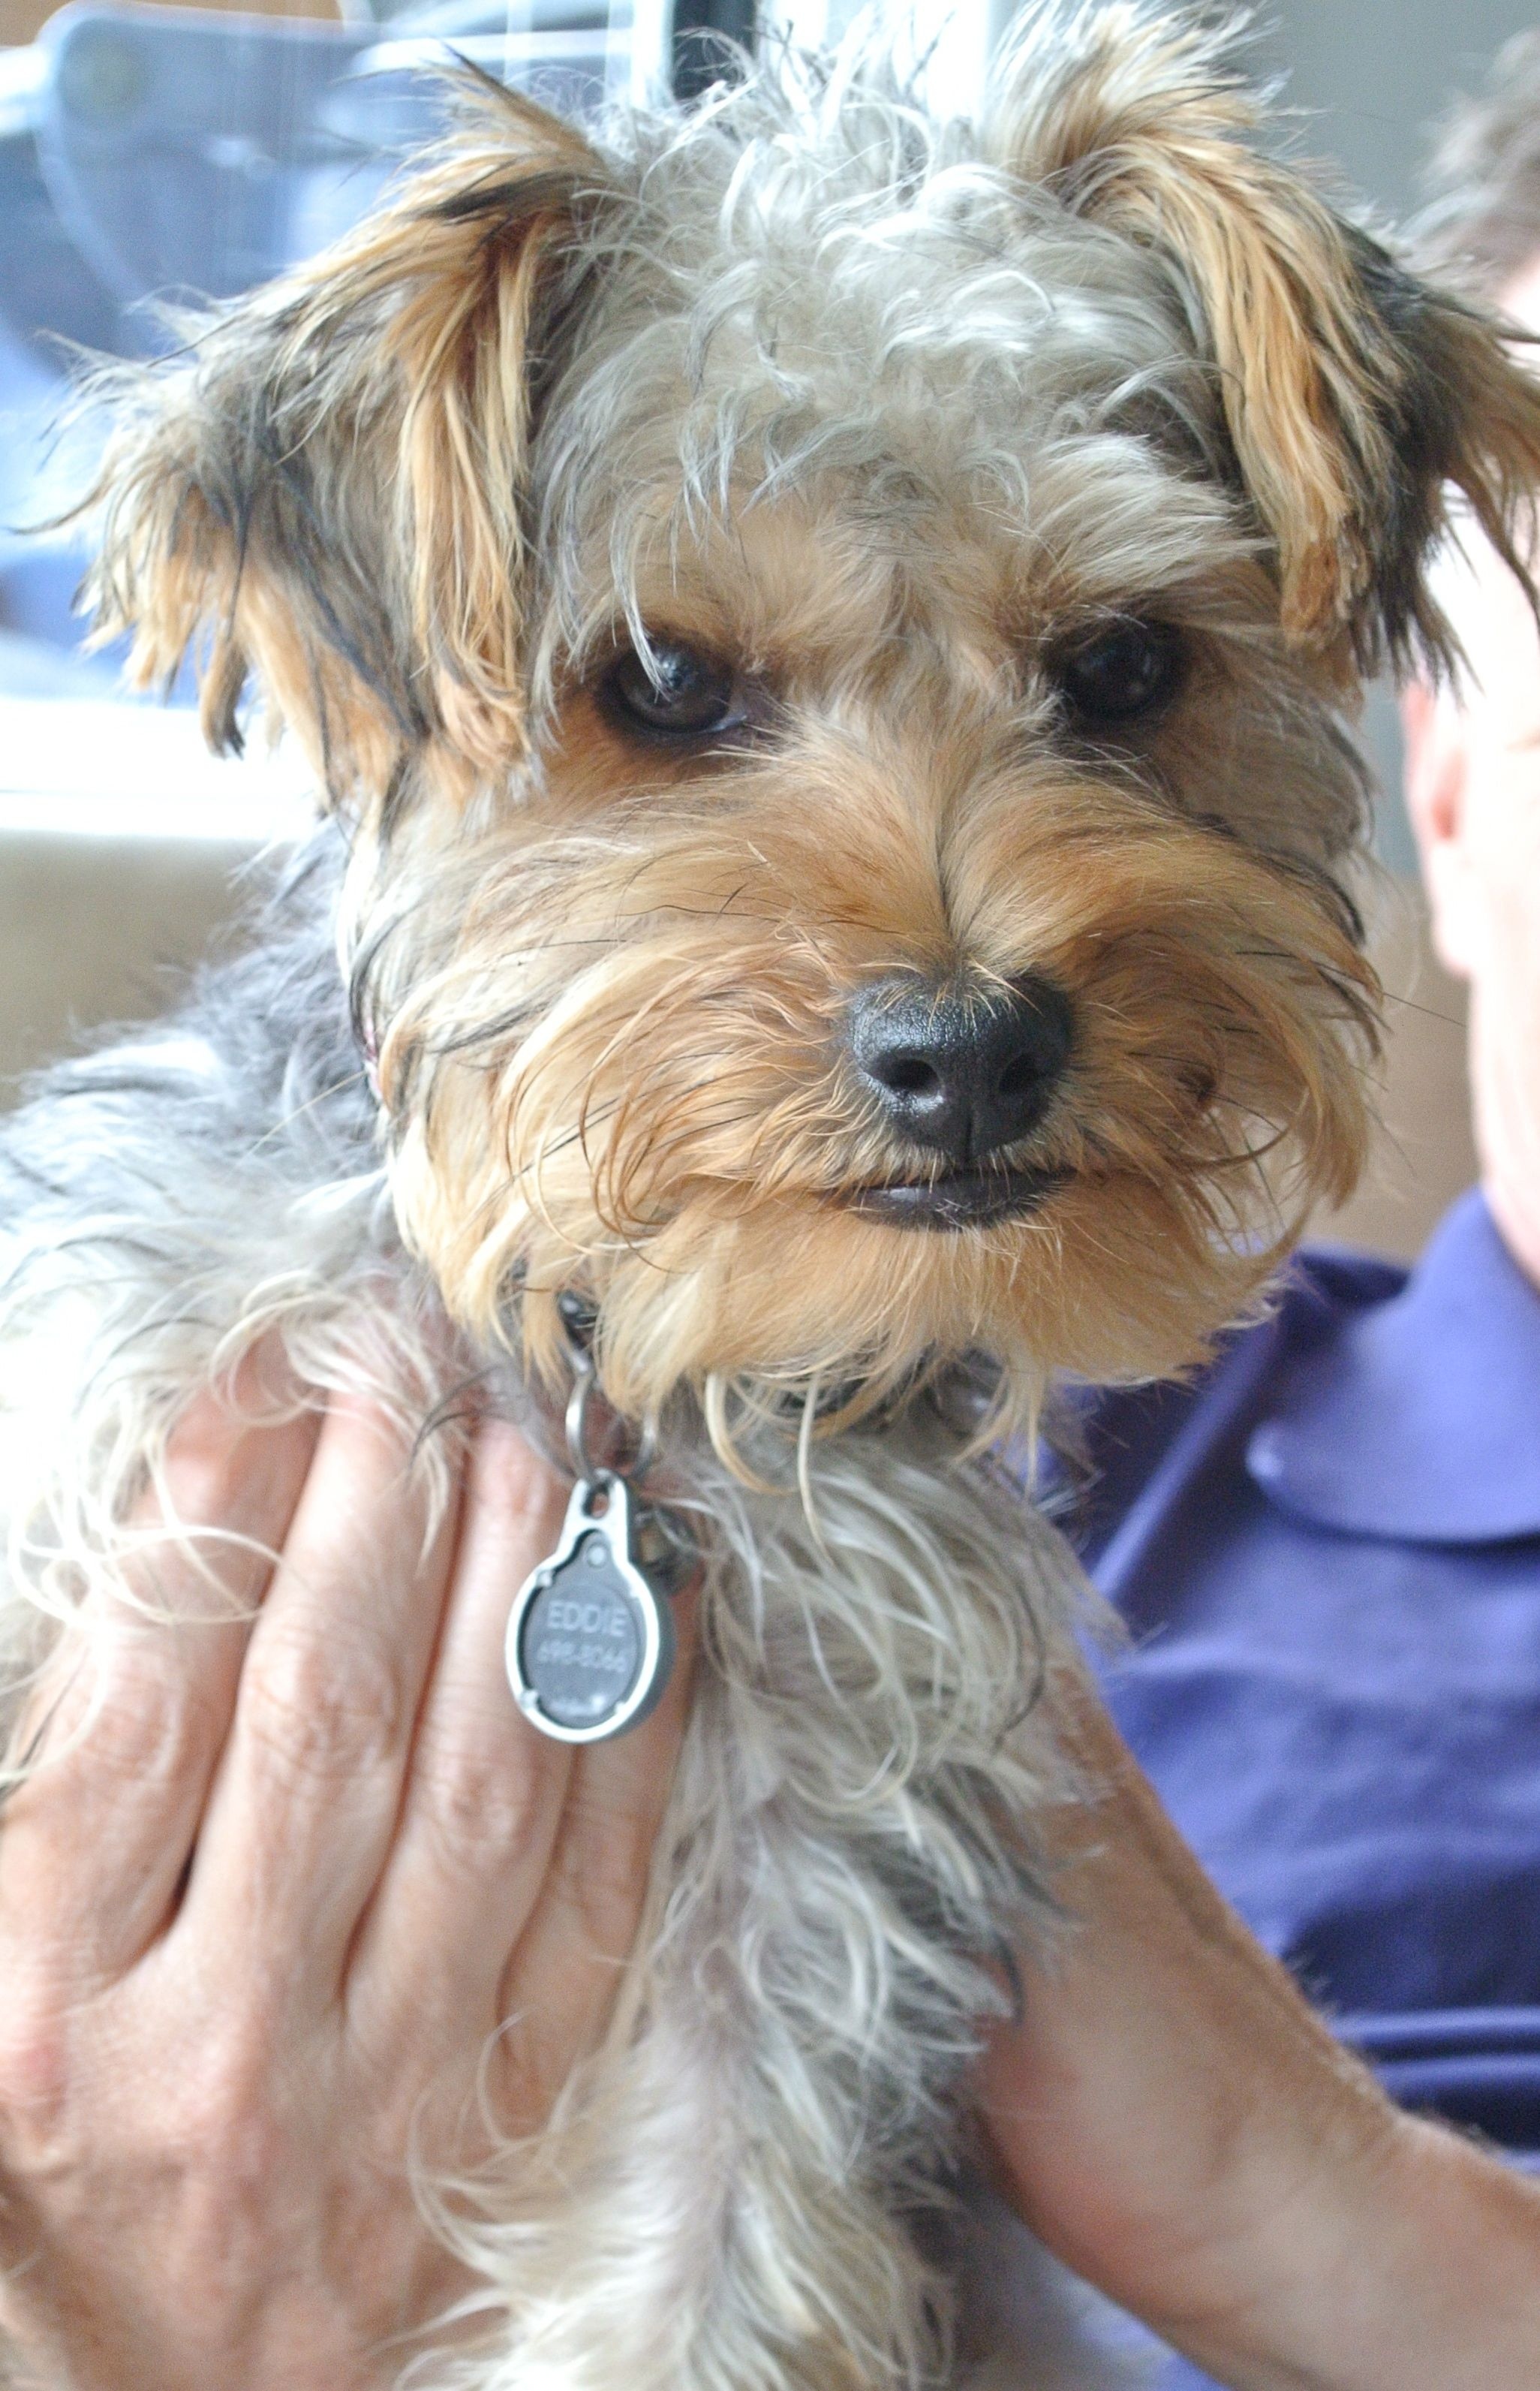 Yorkie haircuts and yorkie grooming resources rachael edwards - Yorkie Haircuts And Yorkie Grooming Resources Rachael Edwards 0